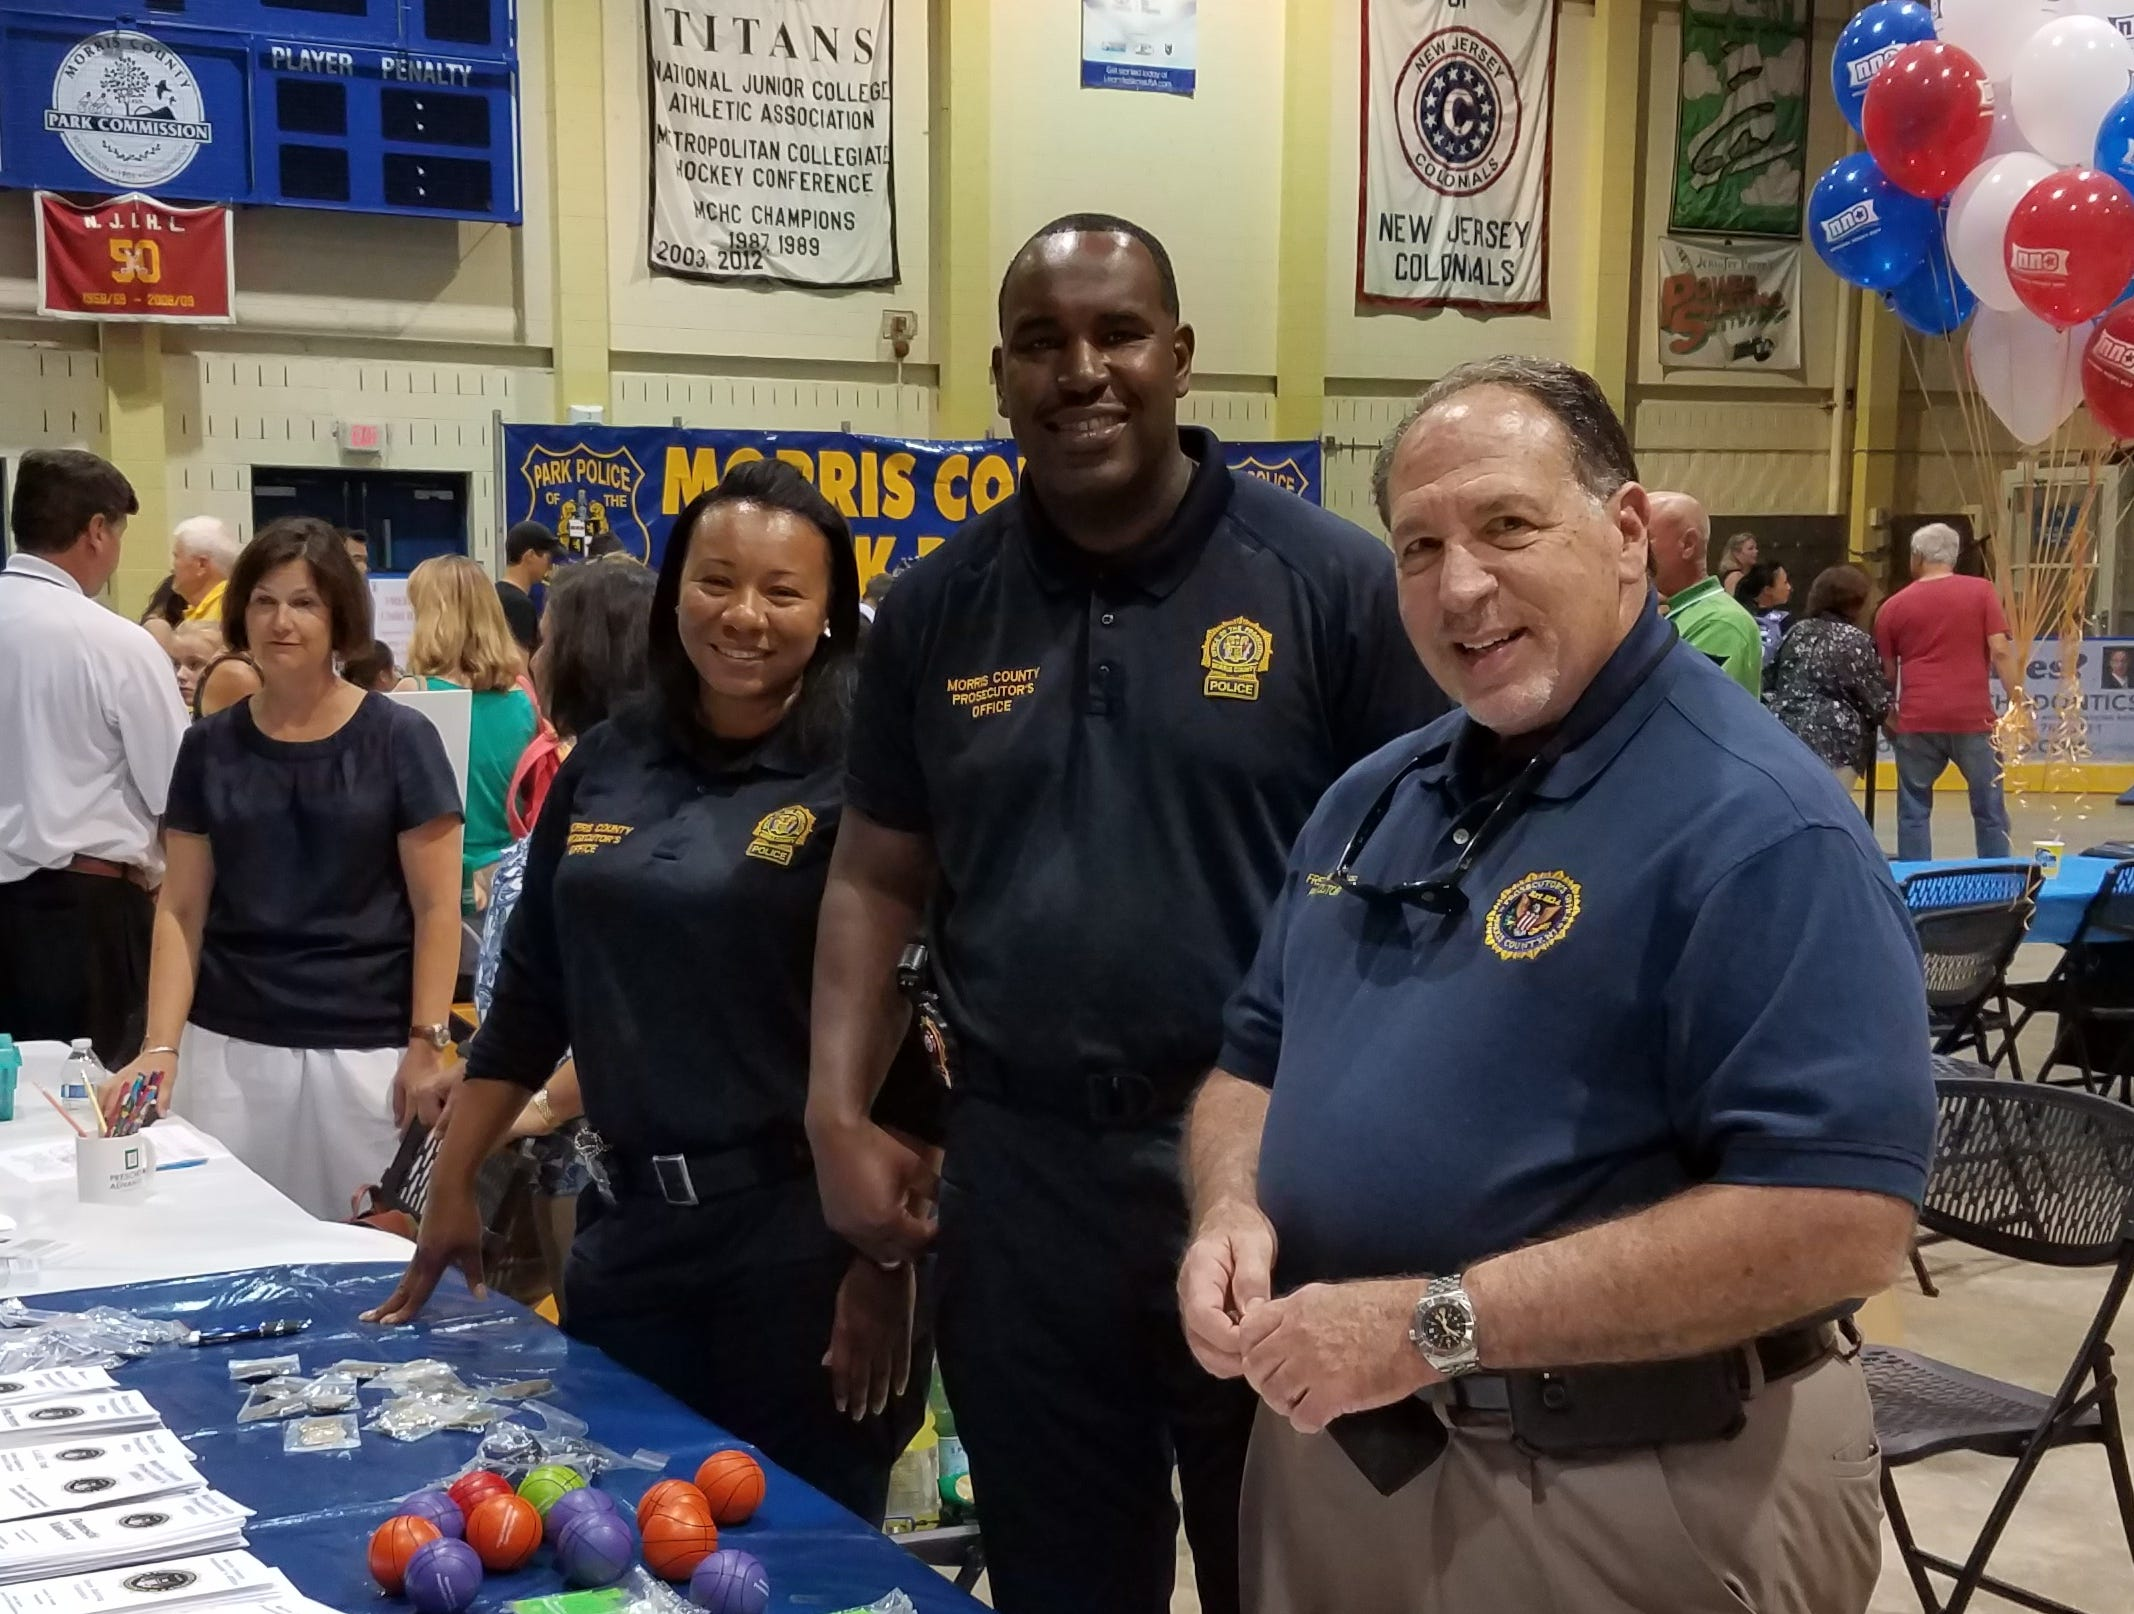 Prosecutor Fredric Knapp, Sgt. Keisha Higgs and Det. Sup. Patrick LaGuerre at the National Night Out event at Mennen Arena on Tuesday, August 7, 2018.